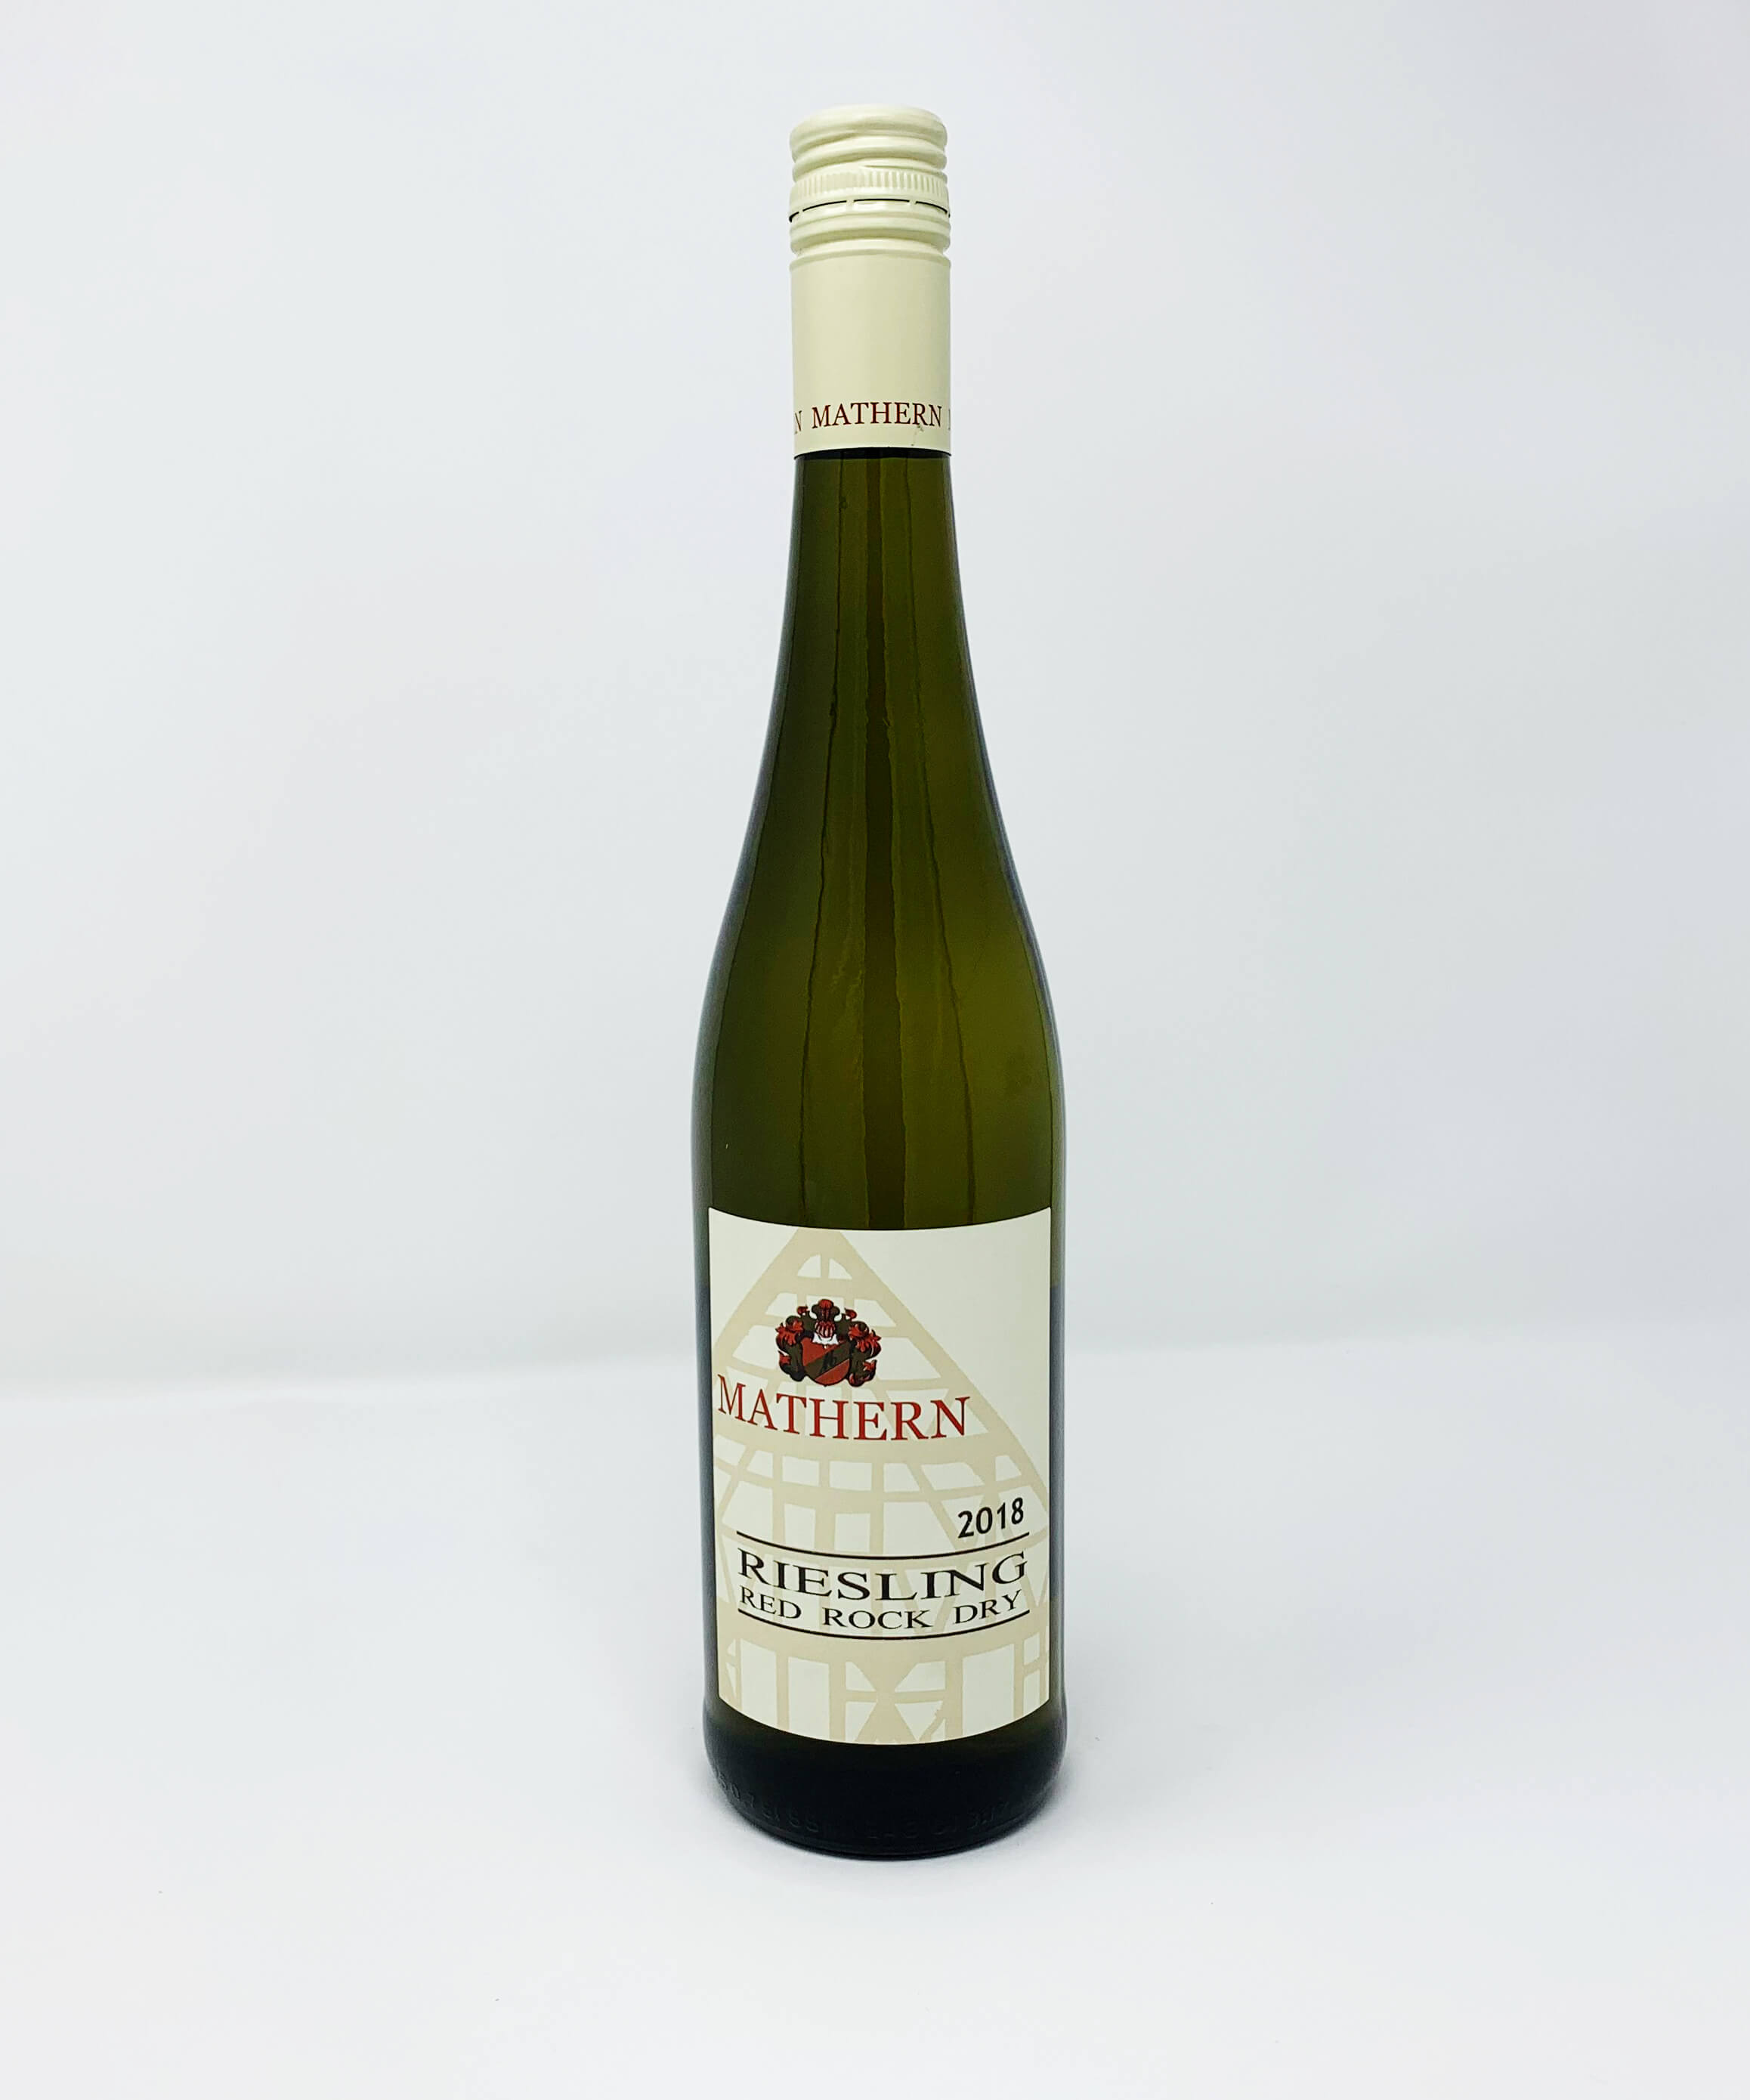 Mathern Riesling Red Rock Dry